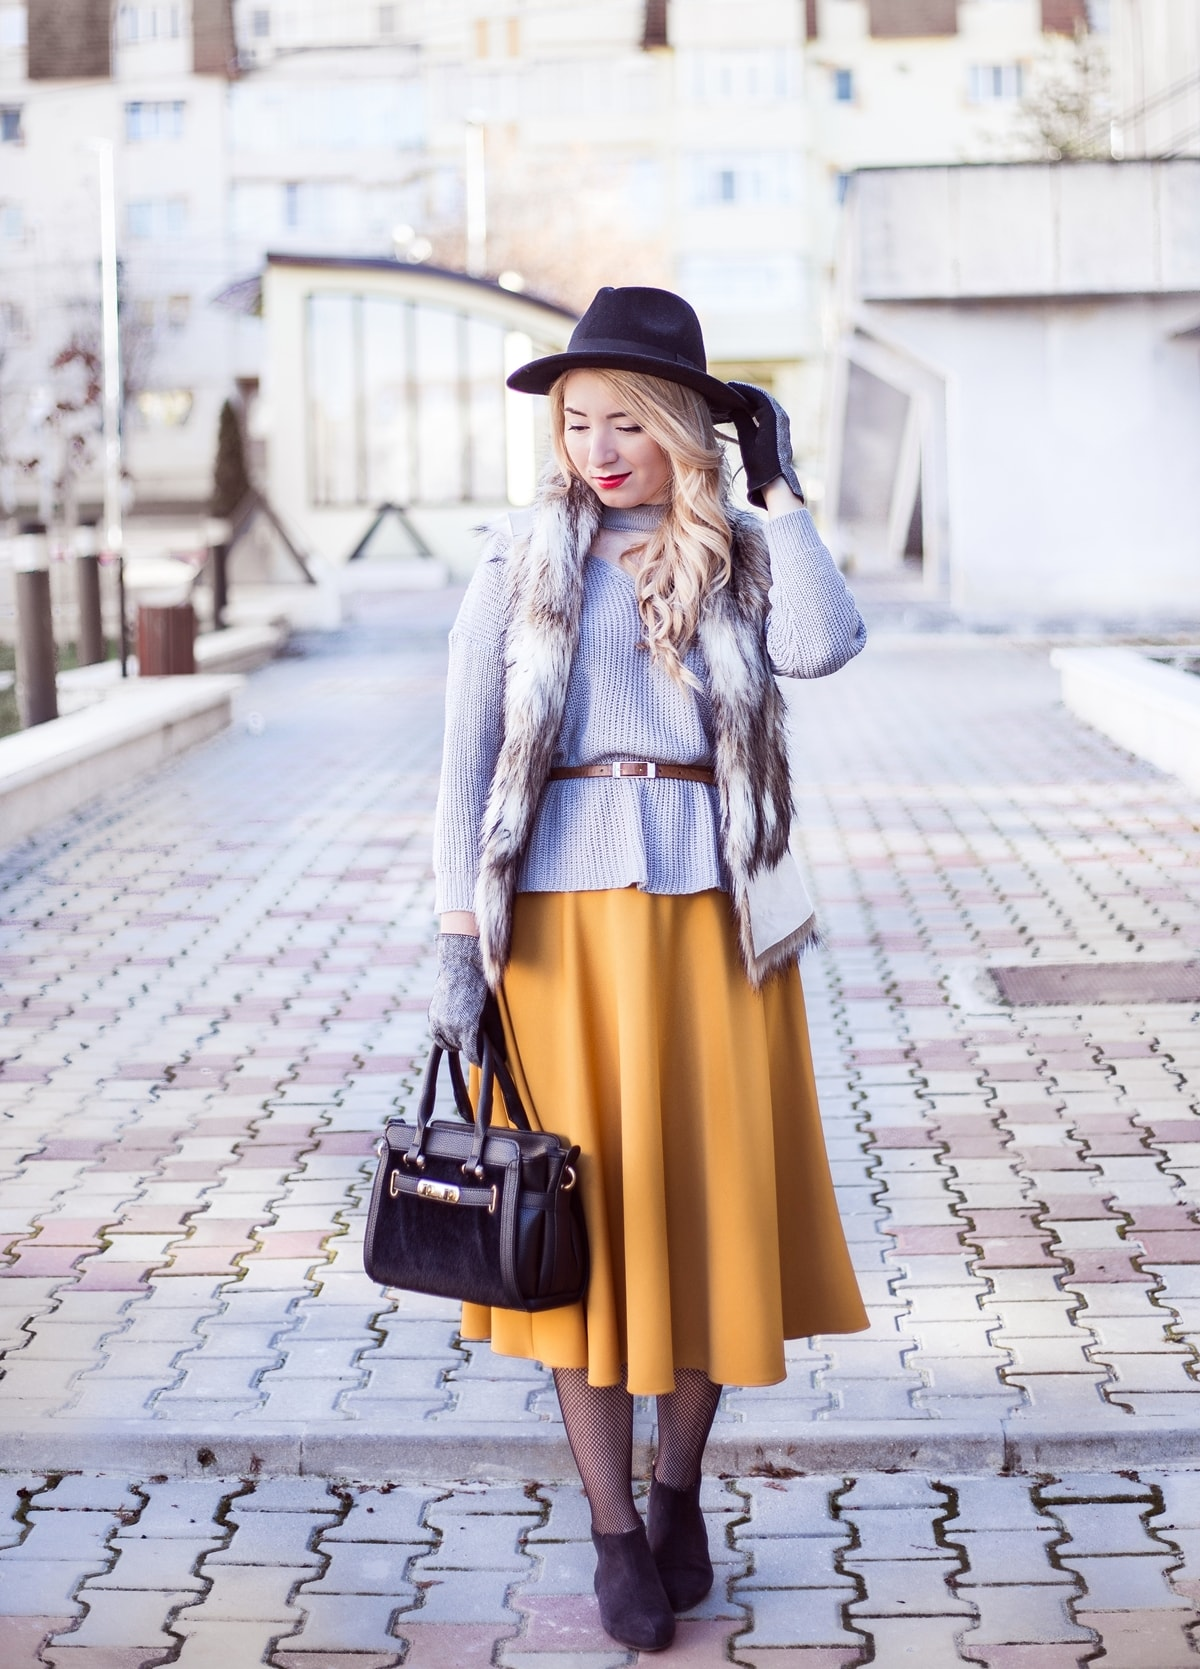 Street style, grey choker sweater, midi yellow skirt, fur vest, zara, black bag, black hat, 50s fashion look, inspired, the dressmaker, Andreea Ristea, winter look, outfit